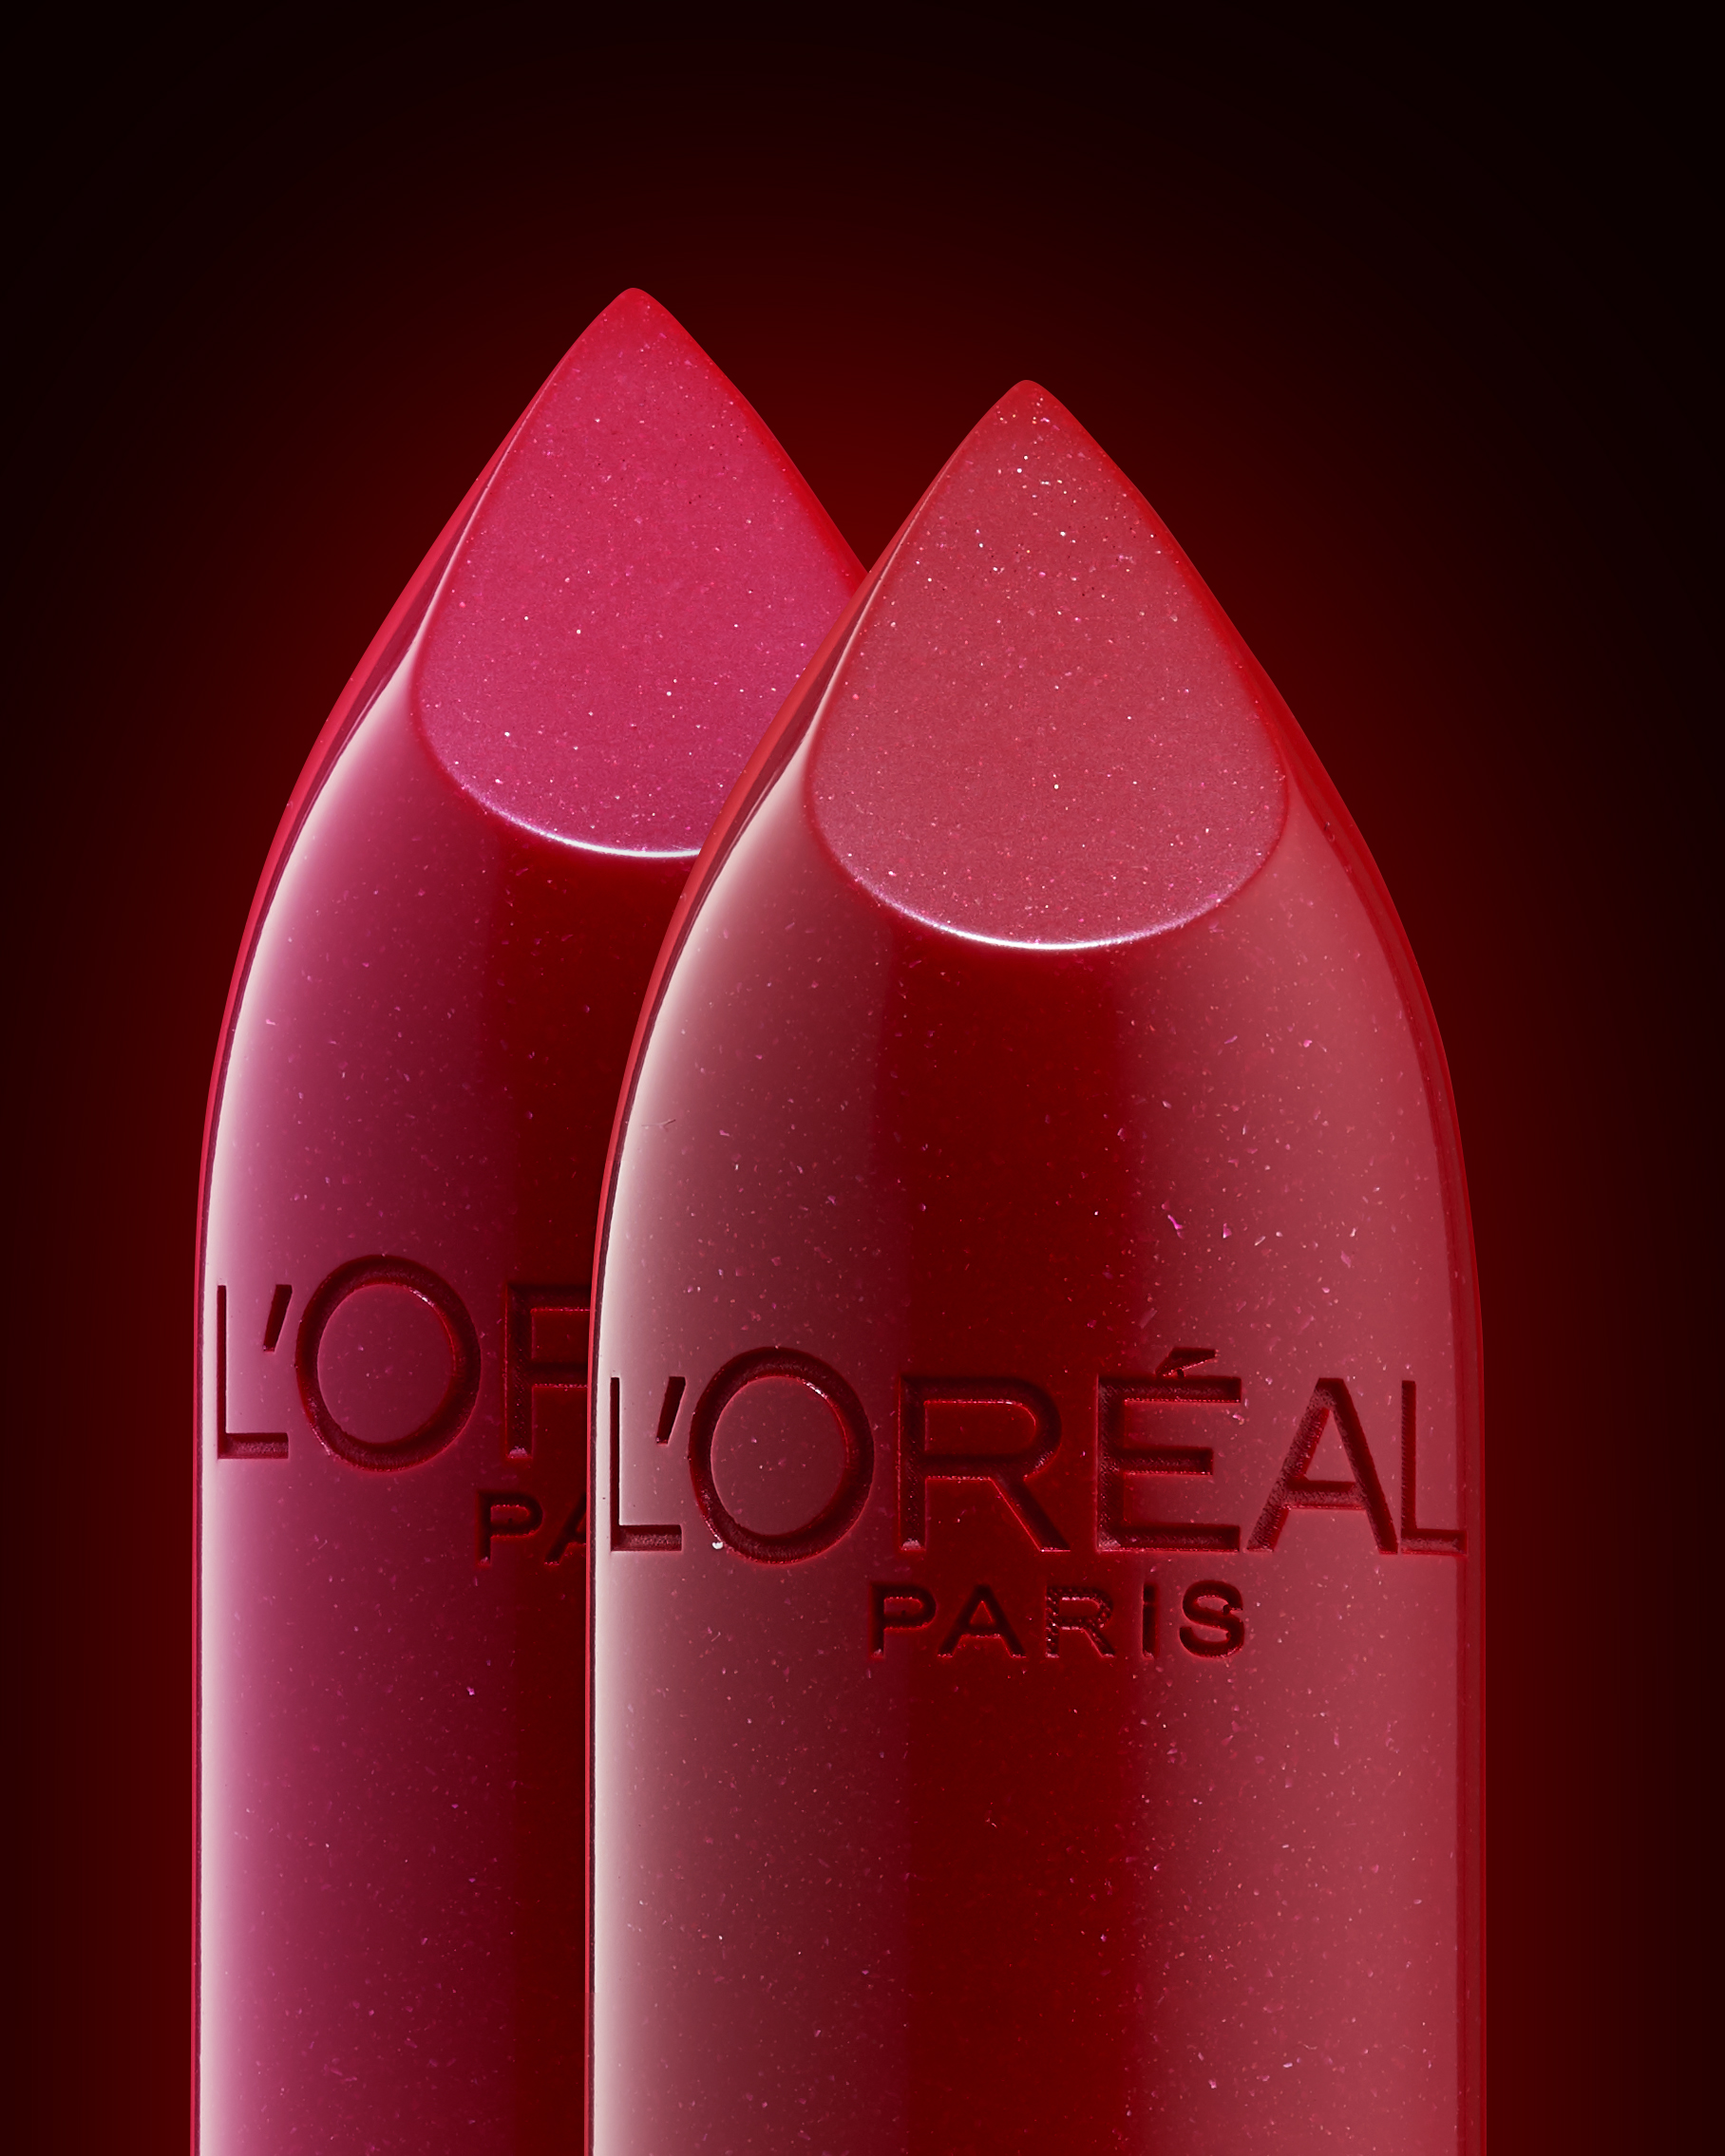 L'Oréal Paris Lipstick - product photography